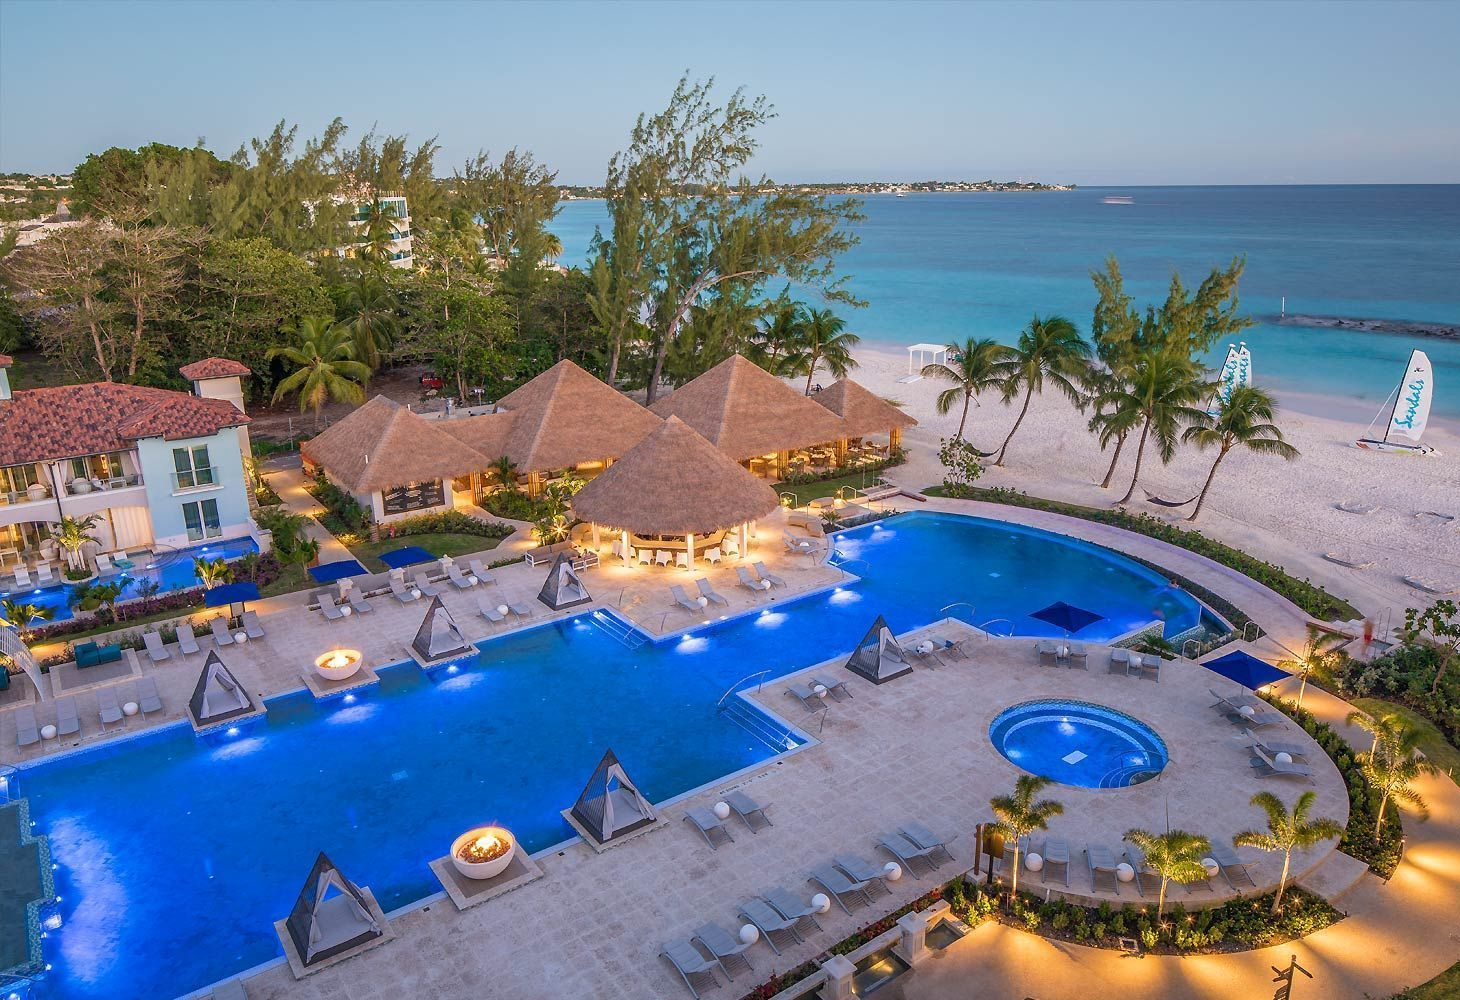 The 7 BEST Caribbean All-Inclusive Resorts for Singles